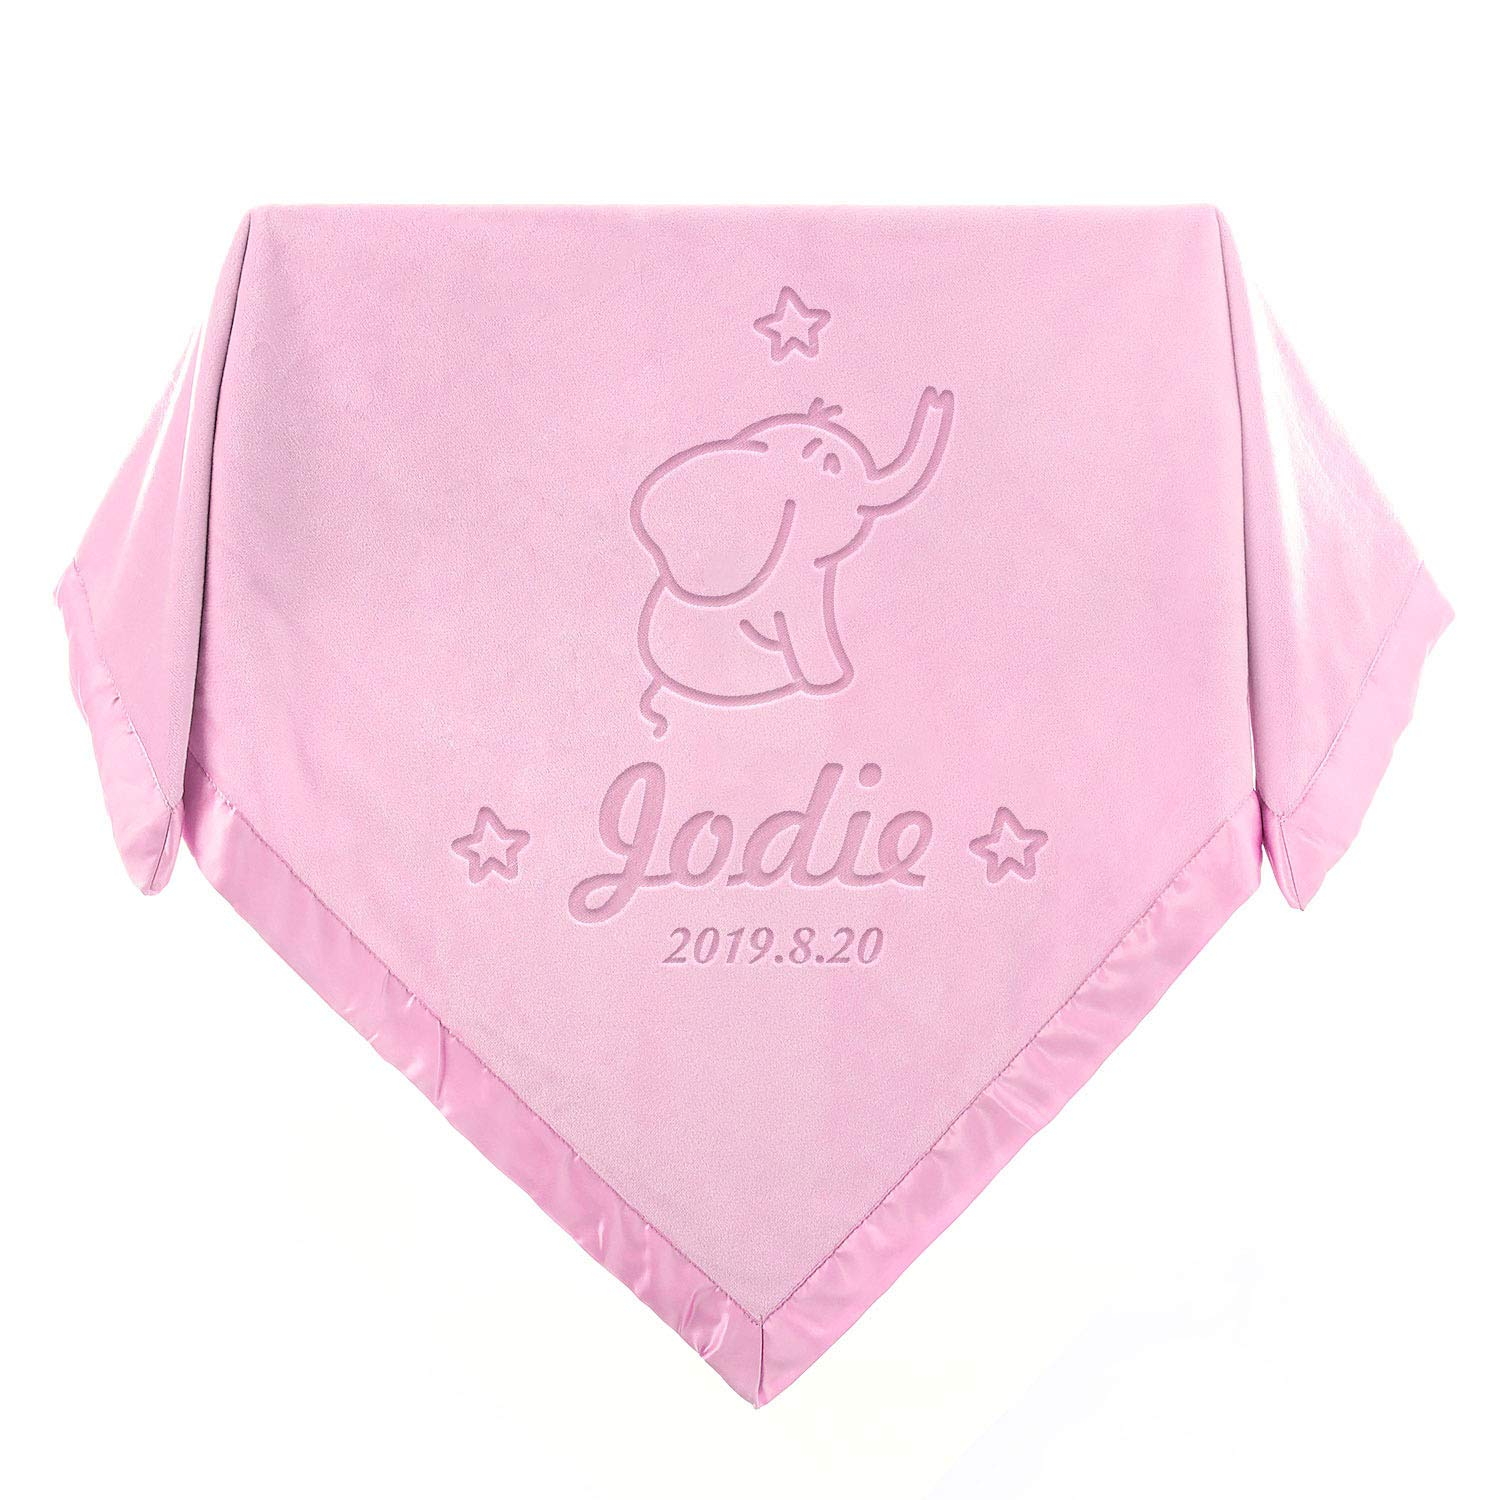 Satin Trim Custom Blanket with Name 36x36inch Pink Infant Wrap Crib Blanket AW Elephant Baby Blanket Personalized Newborn Gifts for Baby Girls